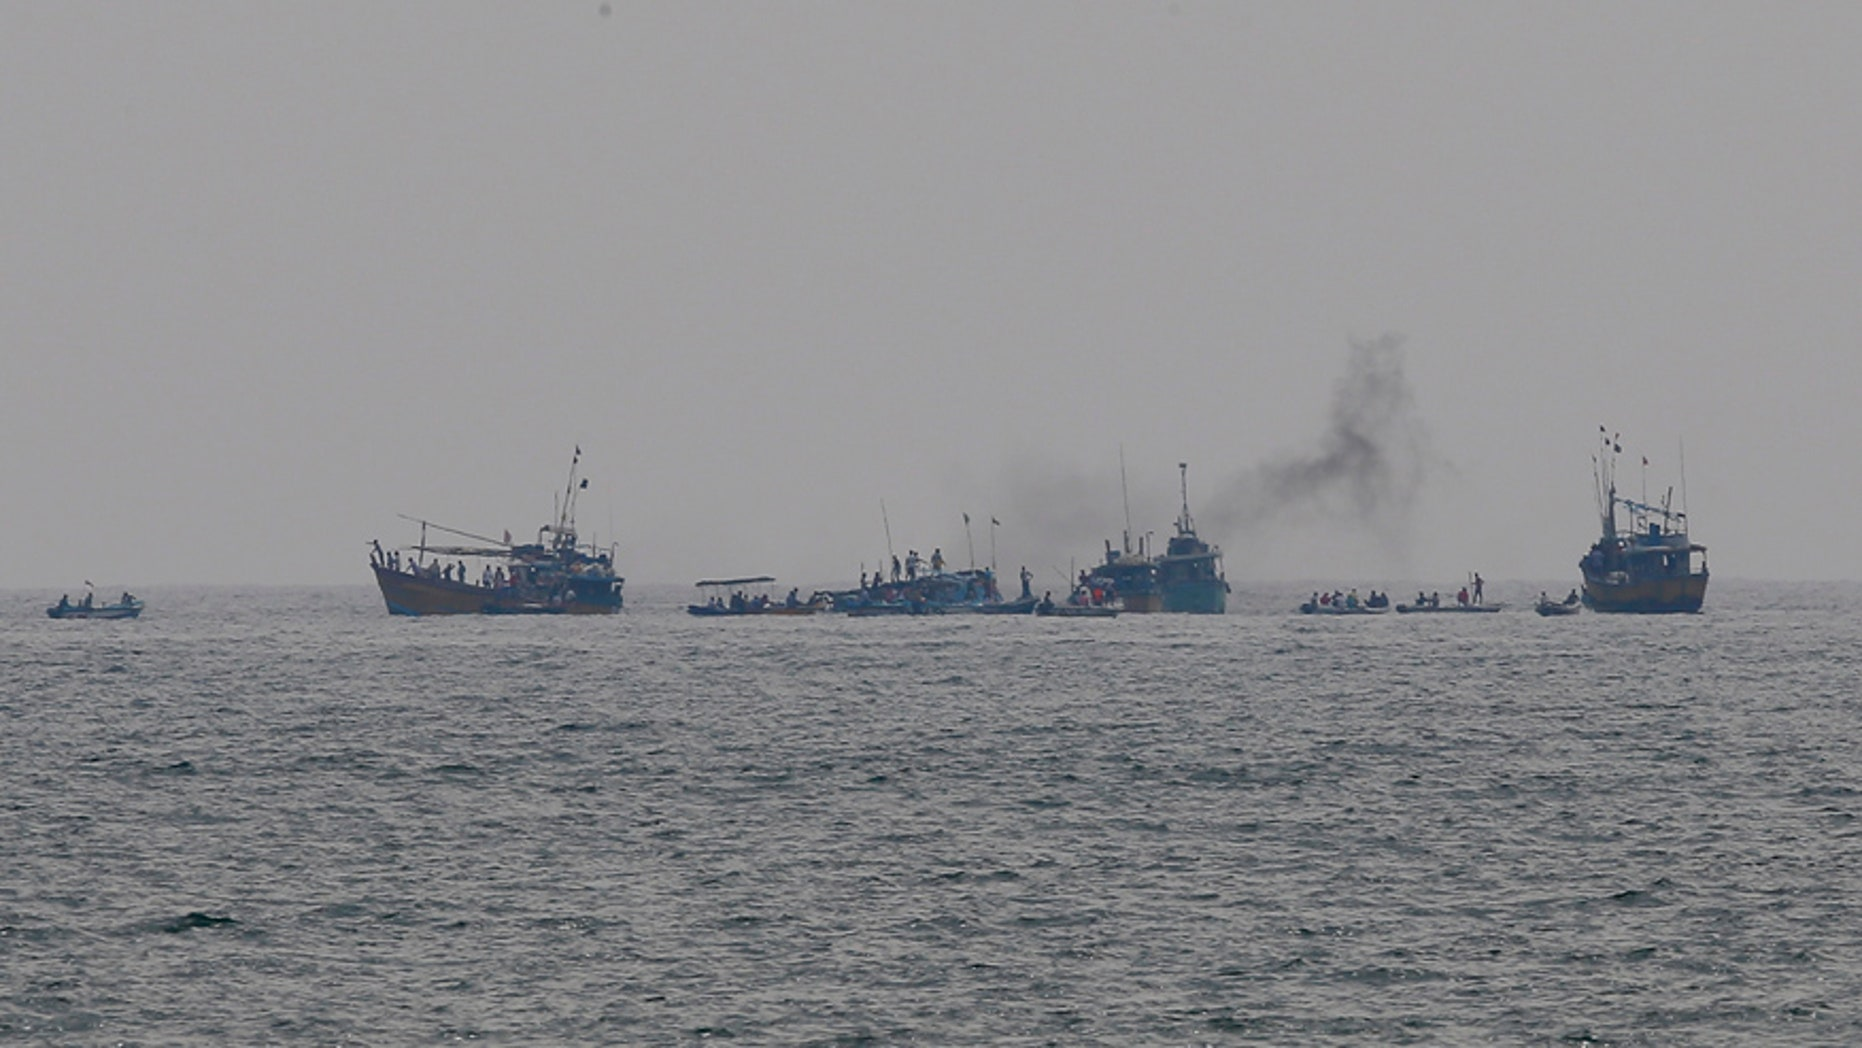 Sri Lanka's navy and rescue boats are seen engaged in rescue operation after a boat capsized in the Indian Ocean off the country's southwestern coast in Beruwala, 60 kilometers (37 miles) south of Colombo, Sri Lanka, Sunday, Feb. 19, 2017. (AP Photo/Eranga Jayawardena)